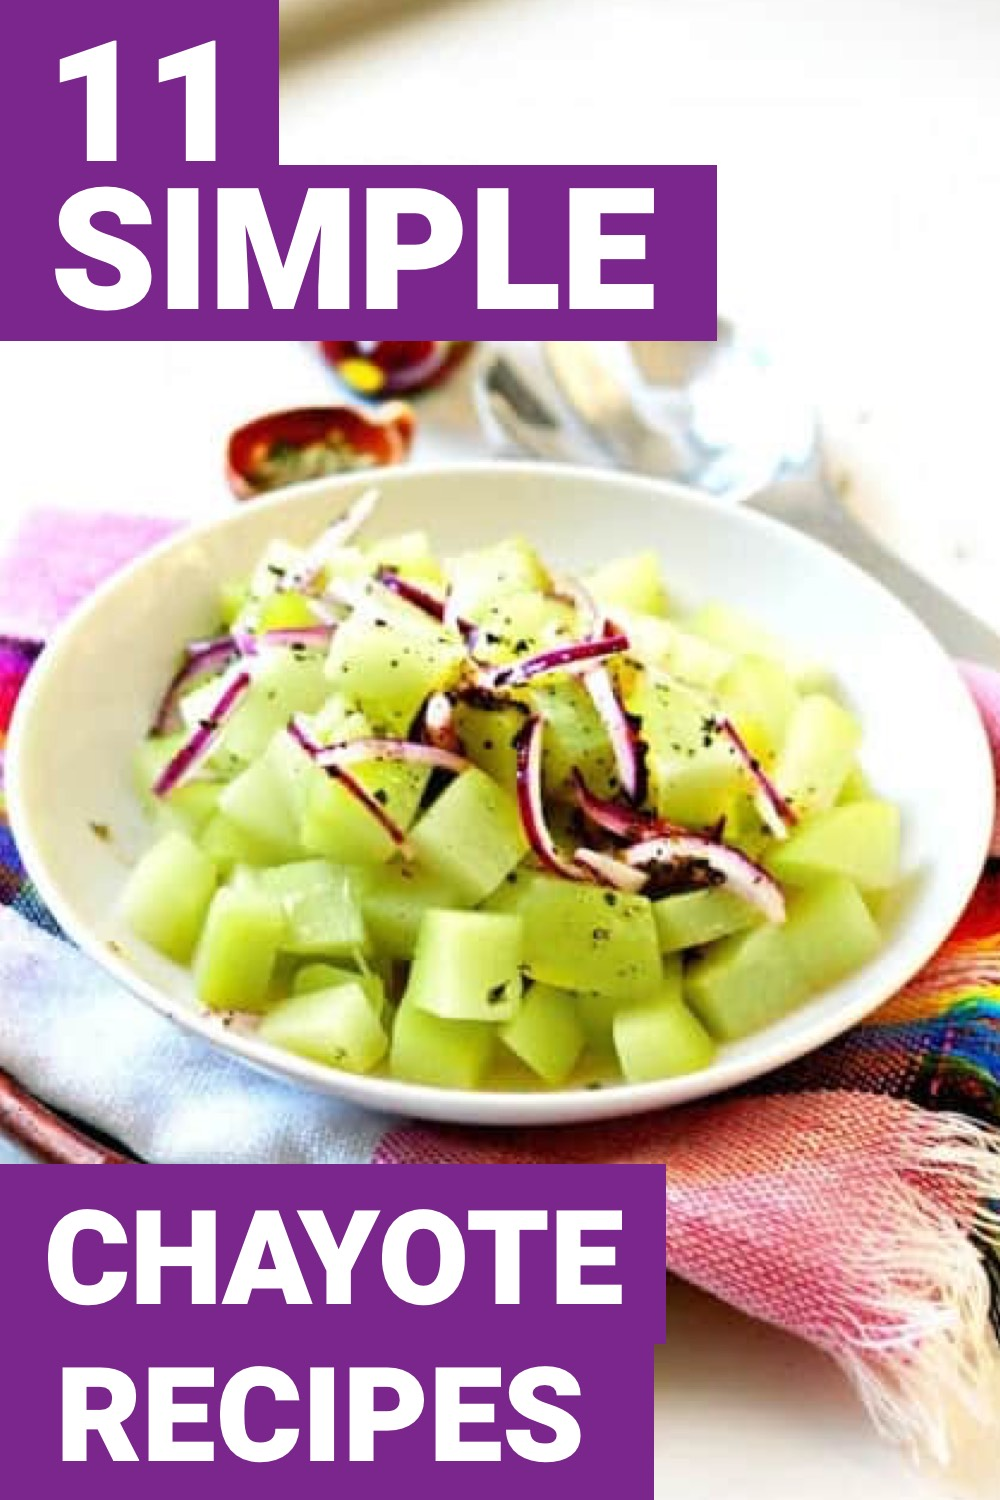 You should try as many foods as you can. Chayote is one of those foods. Here are 11 chayote recipes that you need.